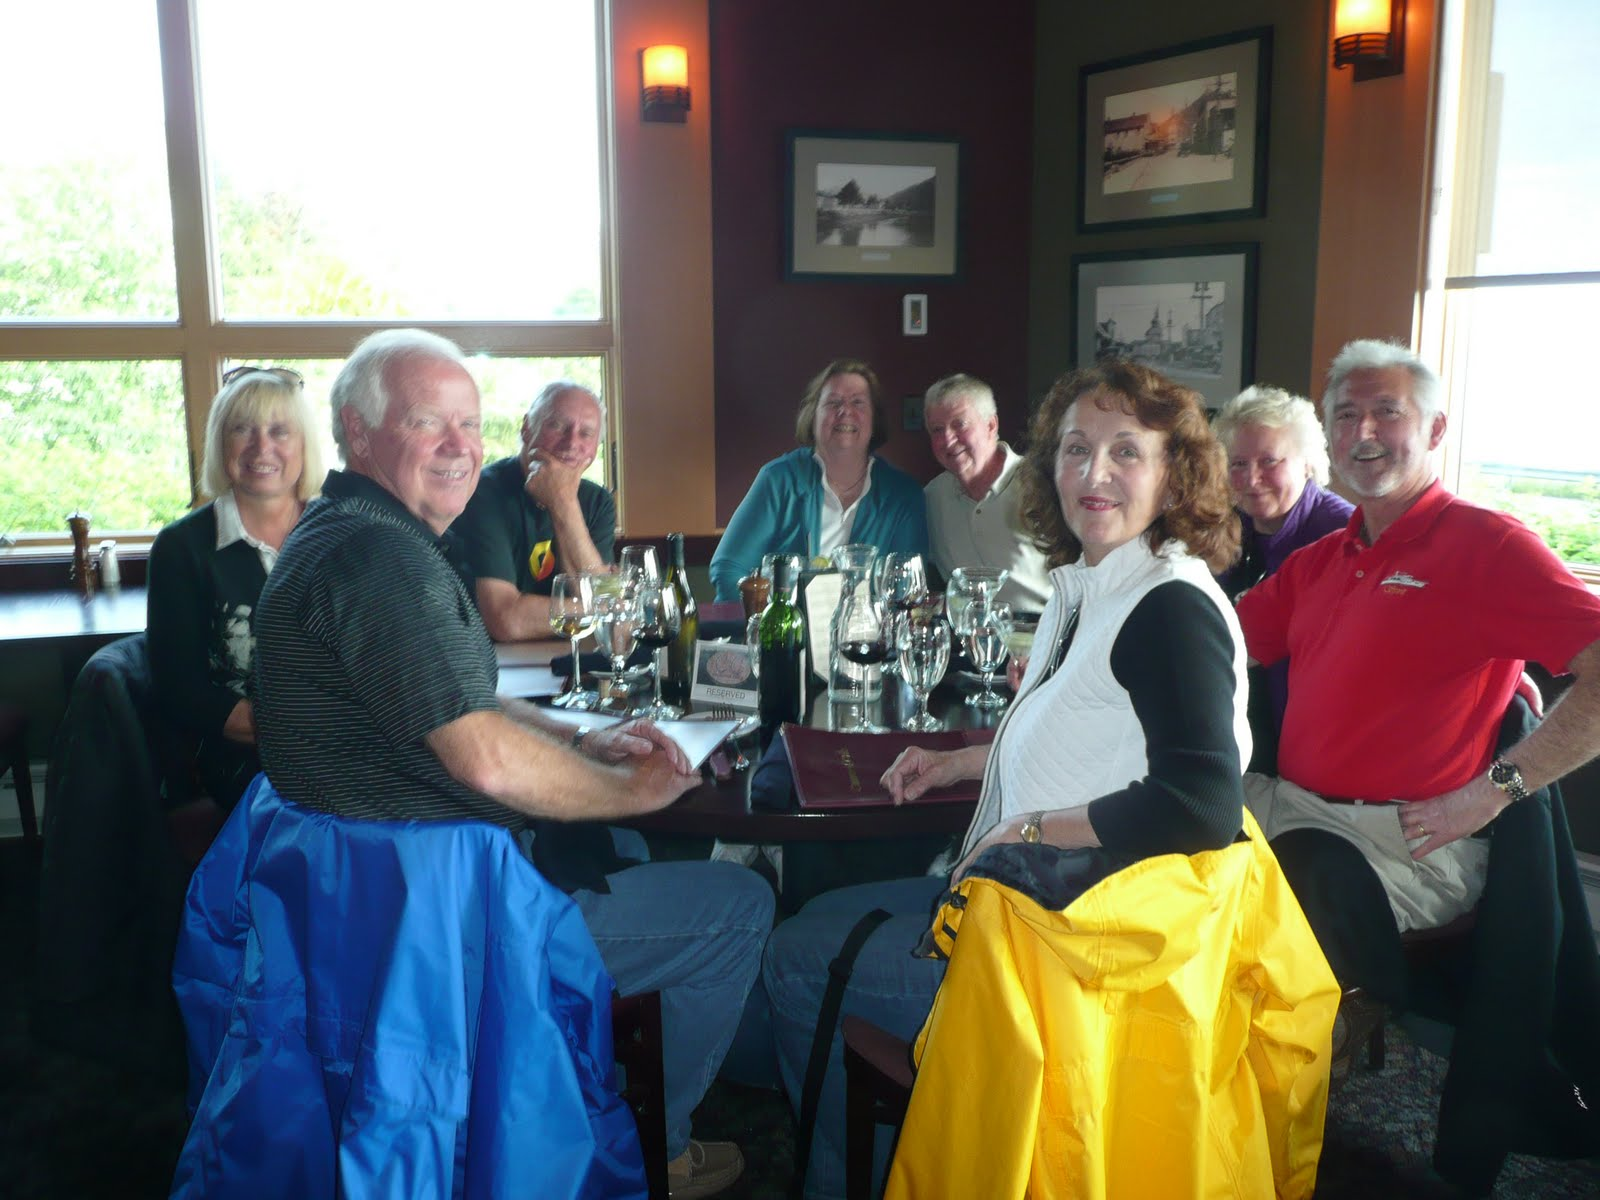 The continuing voyages of spirit leaving sitka the crews of journey skie and spirit meet for dinner at the channel club sitka sciox Images